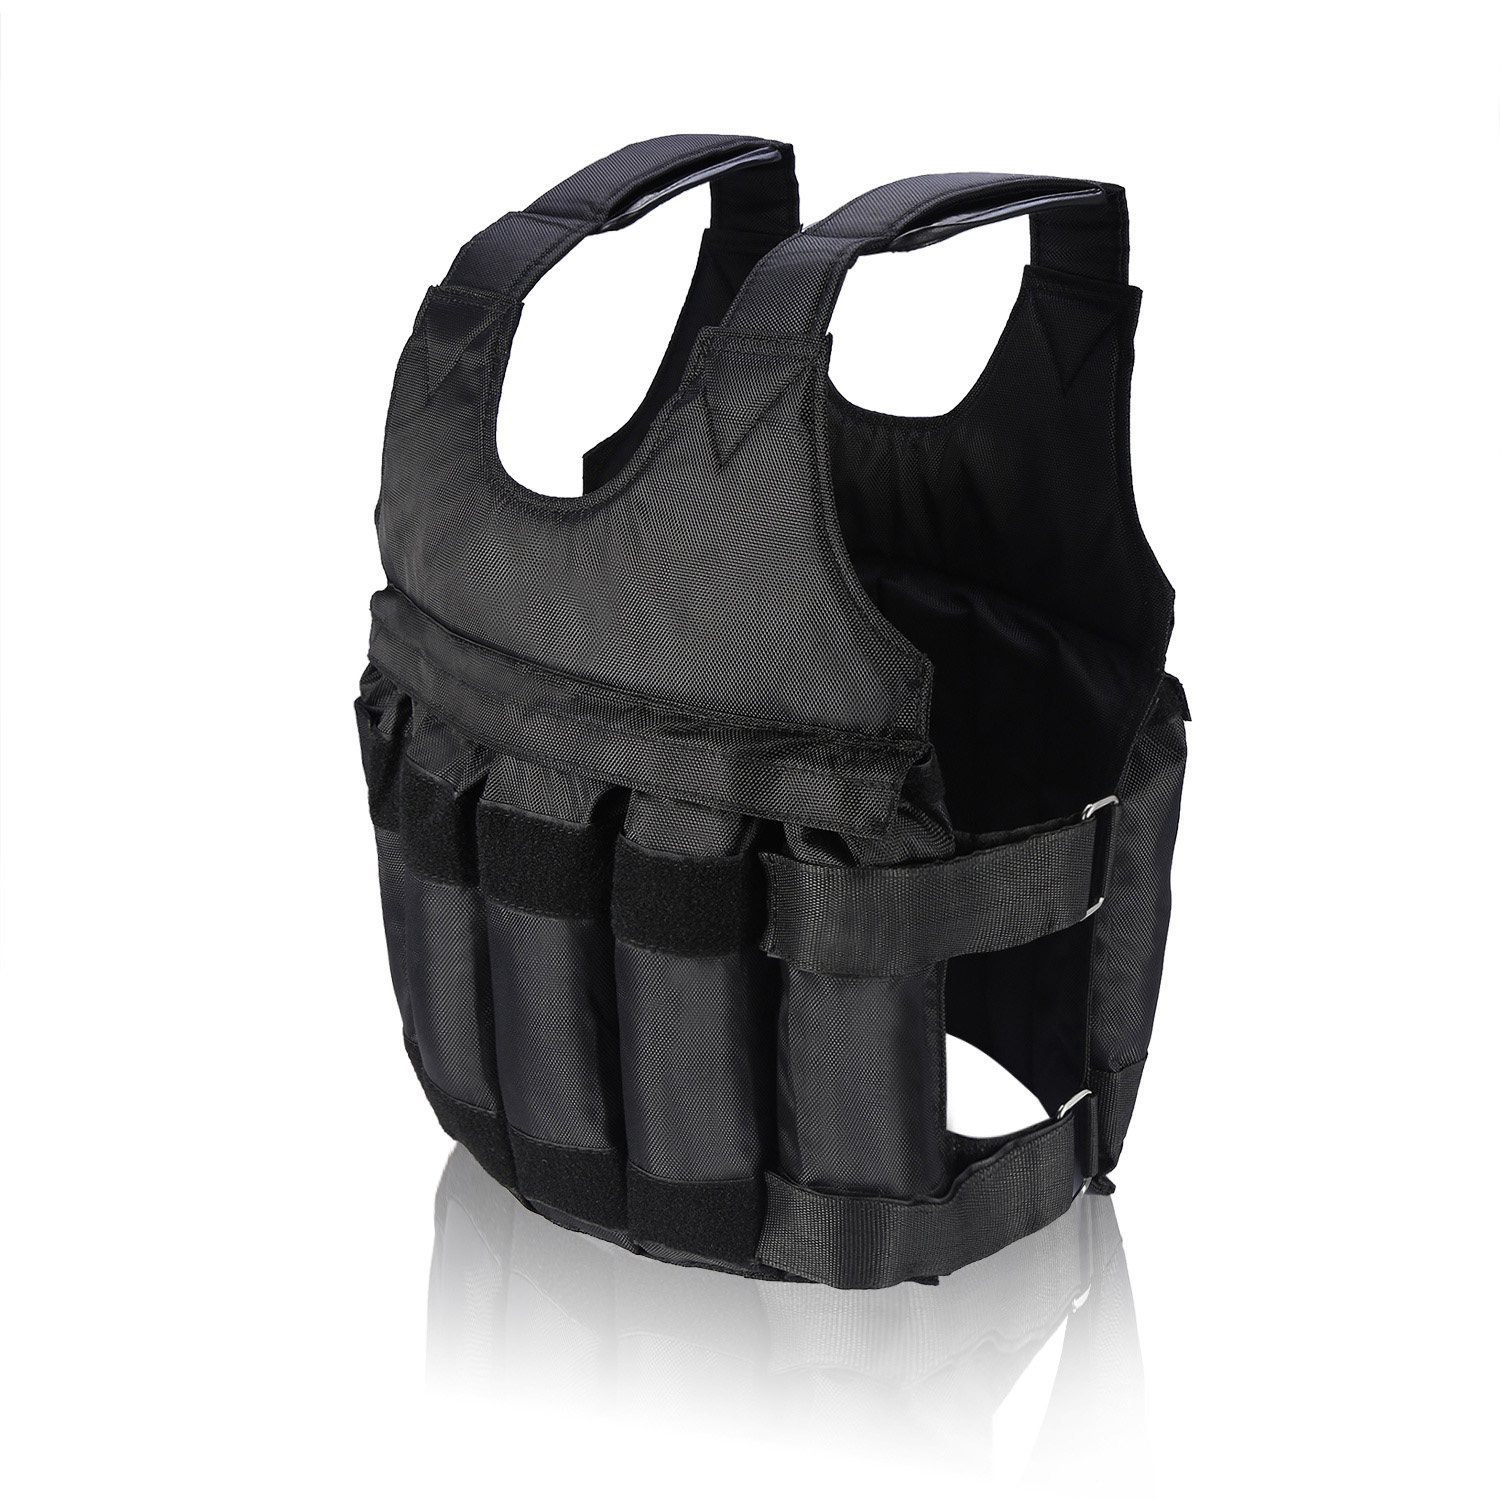 Weighted-Vest-44-110lbs-Weight-Workout-Exercise-Body-Training-Crossfit-Equipment thumbnail 12